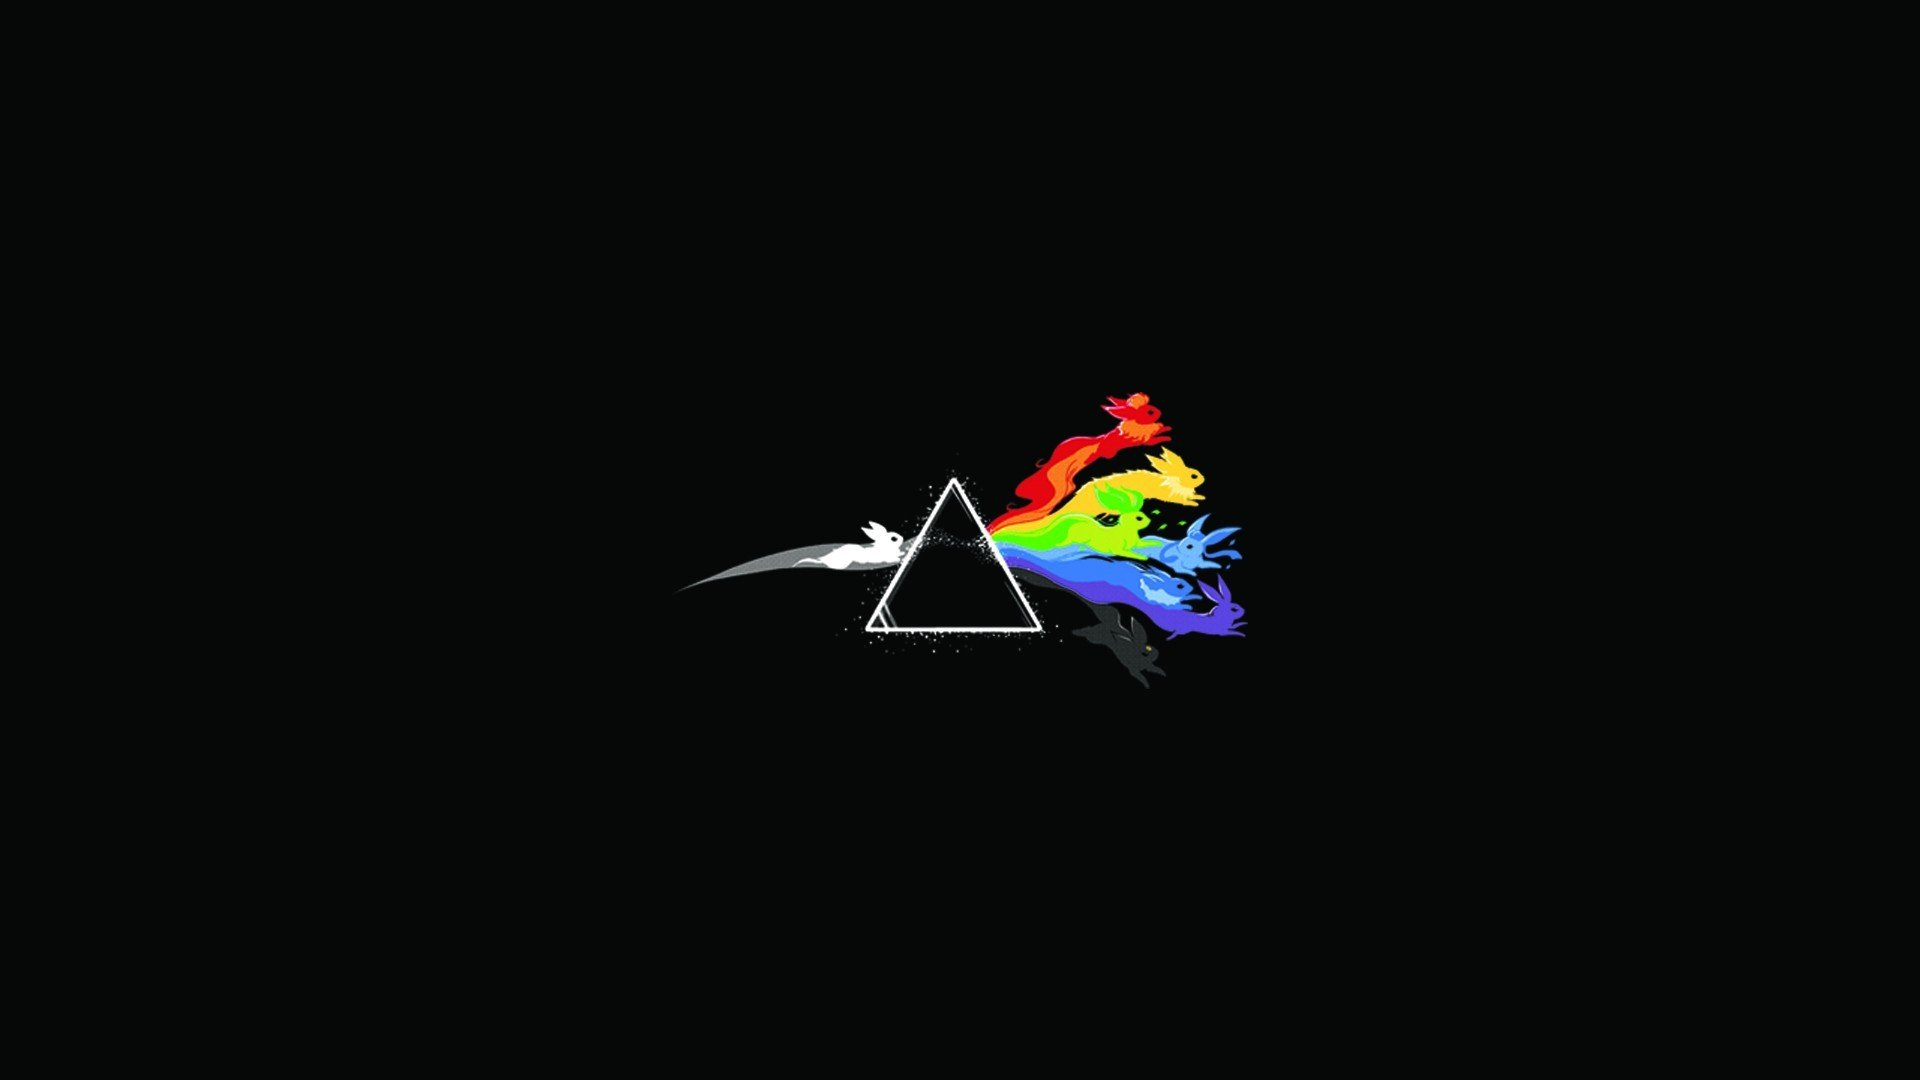 Gravity Falls Wallpaper For Computer Pok 233 Mon Pink Floyd The Dark Side Of The Moon Hd